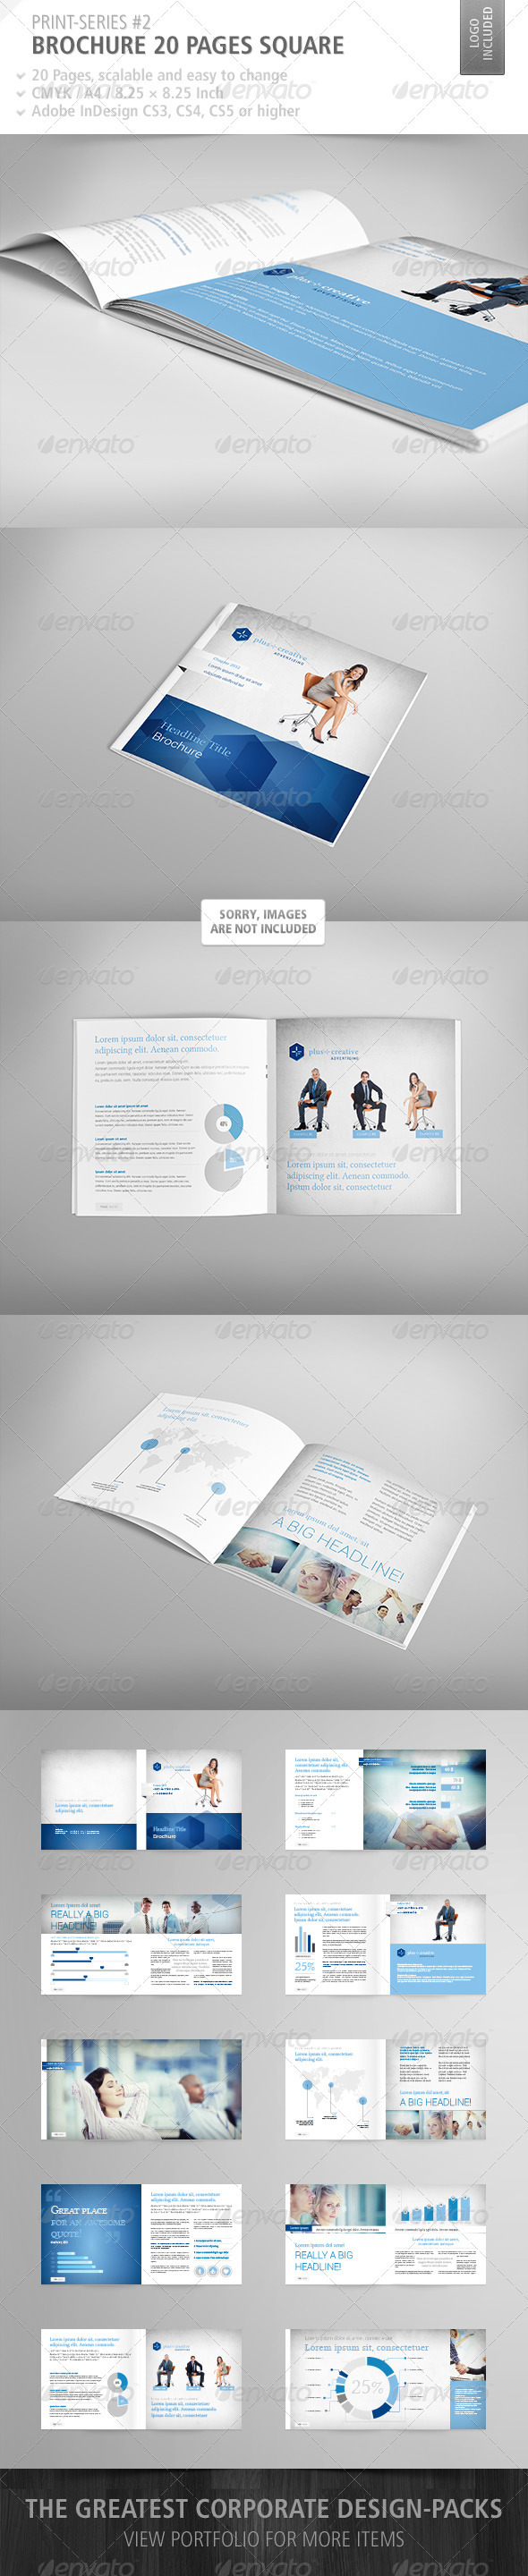 GraphicRiver Brochure Square 20 Pages Print-Series #2 3922884